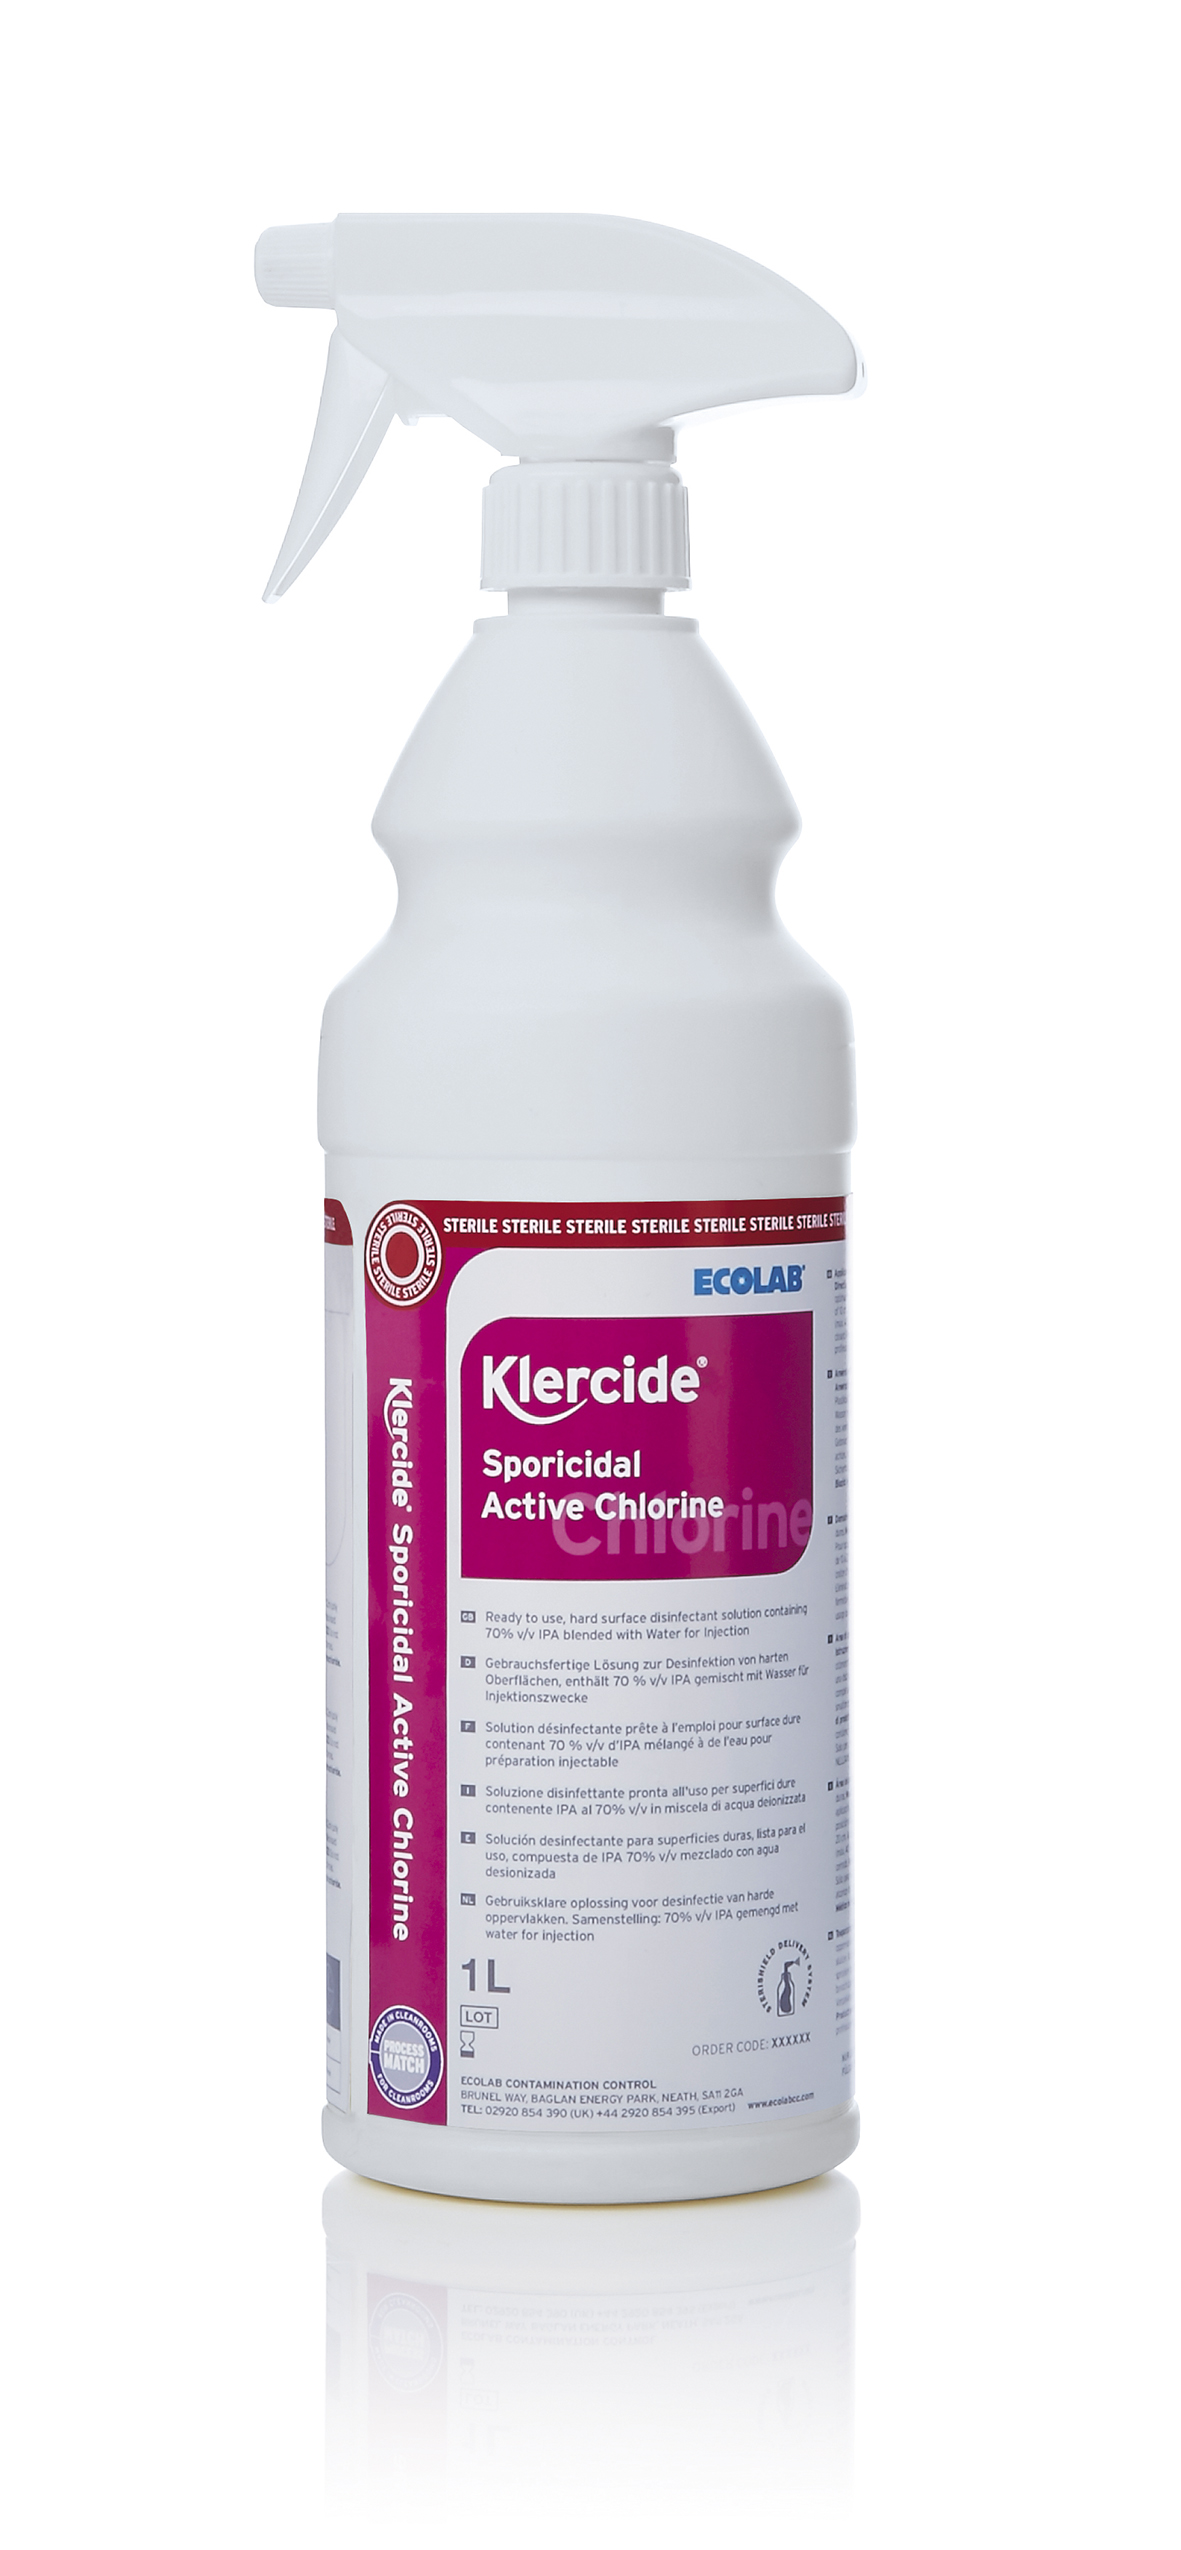 Klercide sporicidal active chlorine sterile 6x1l spray for Active salon supplies